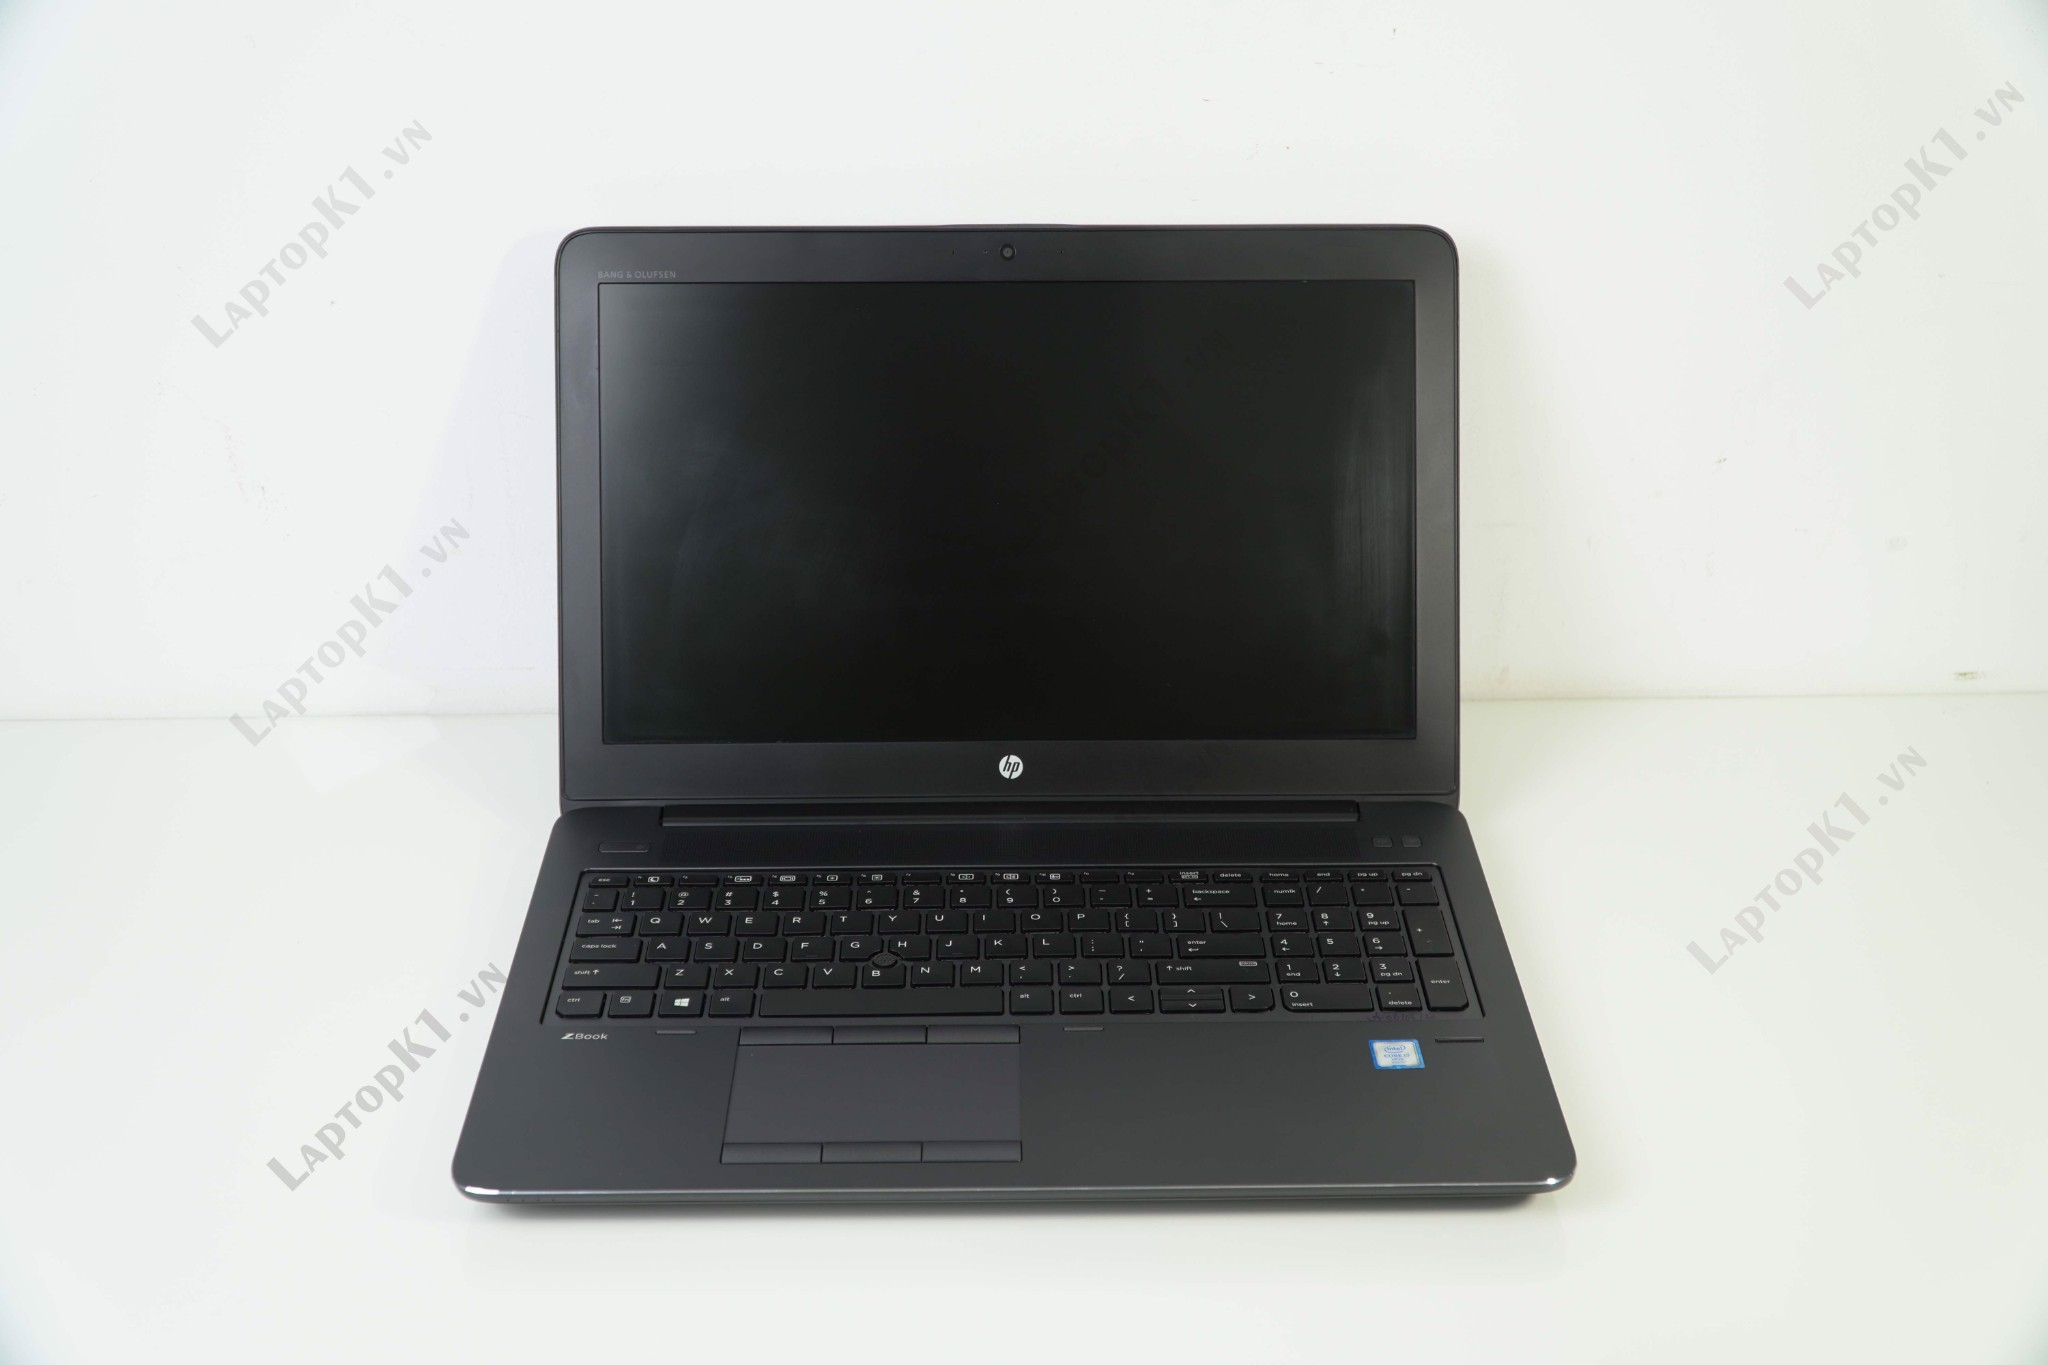 Laptop Workstation HP ZBook 15 G3 Core i7 6820HQ / RAM 8GB / 256B M1000M / 15.6inch FHD